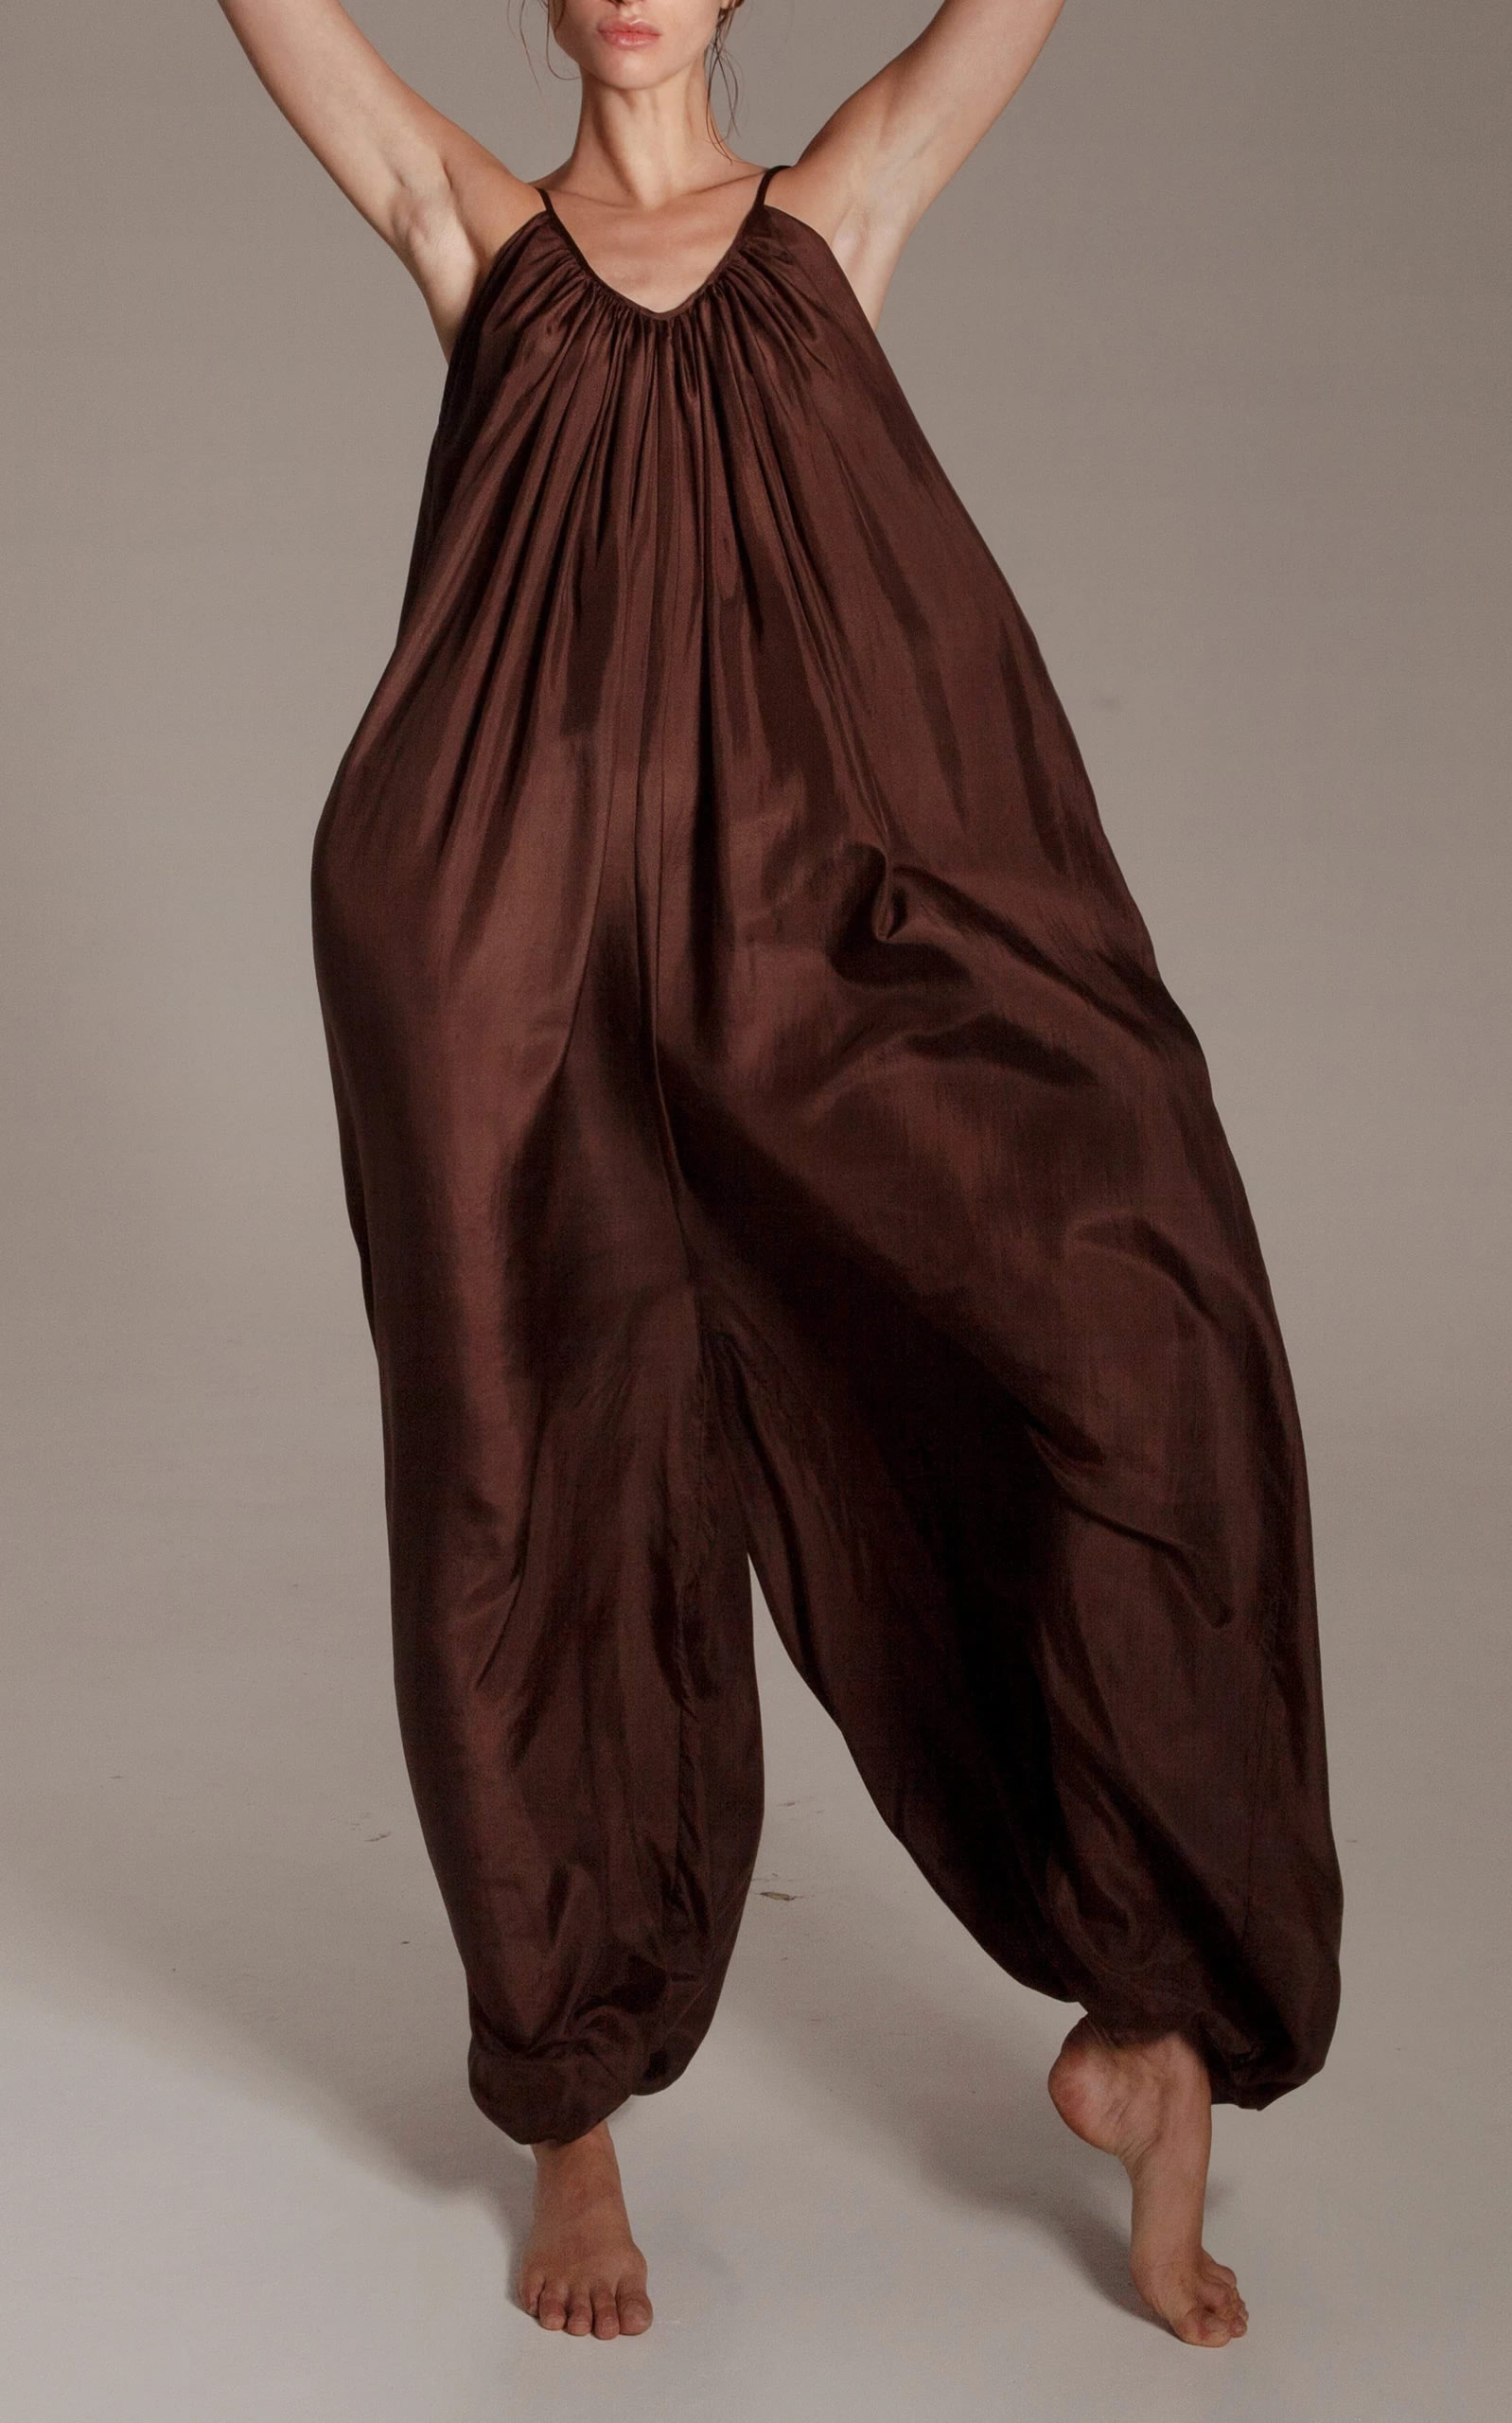 Kalita - Destination Wear - Brown Balloon Silk Jumpsuit